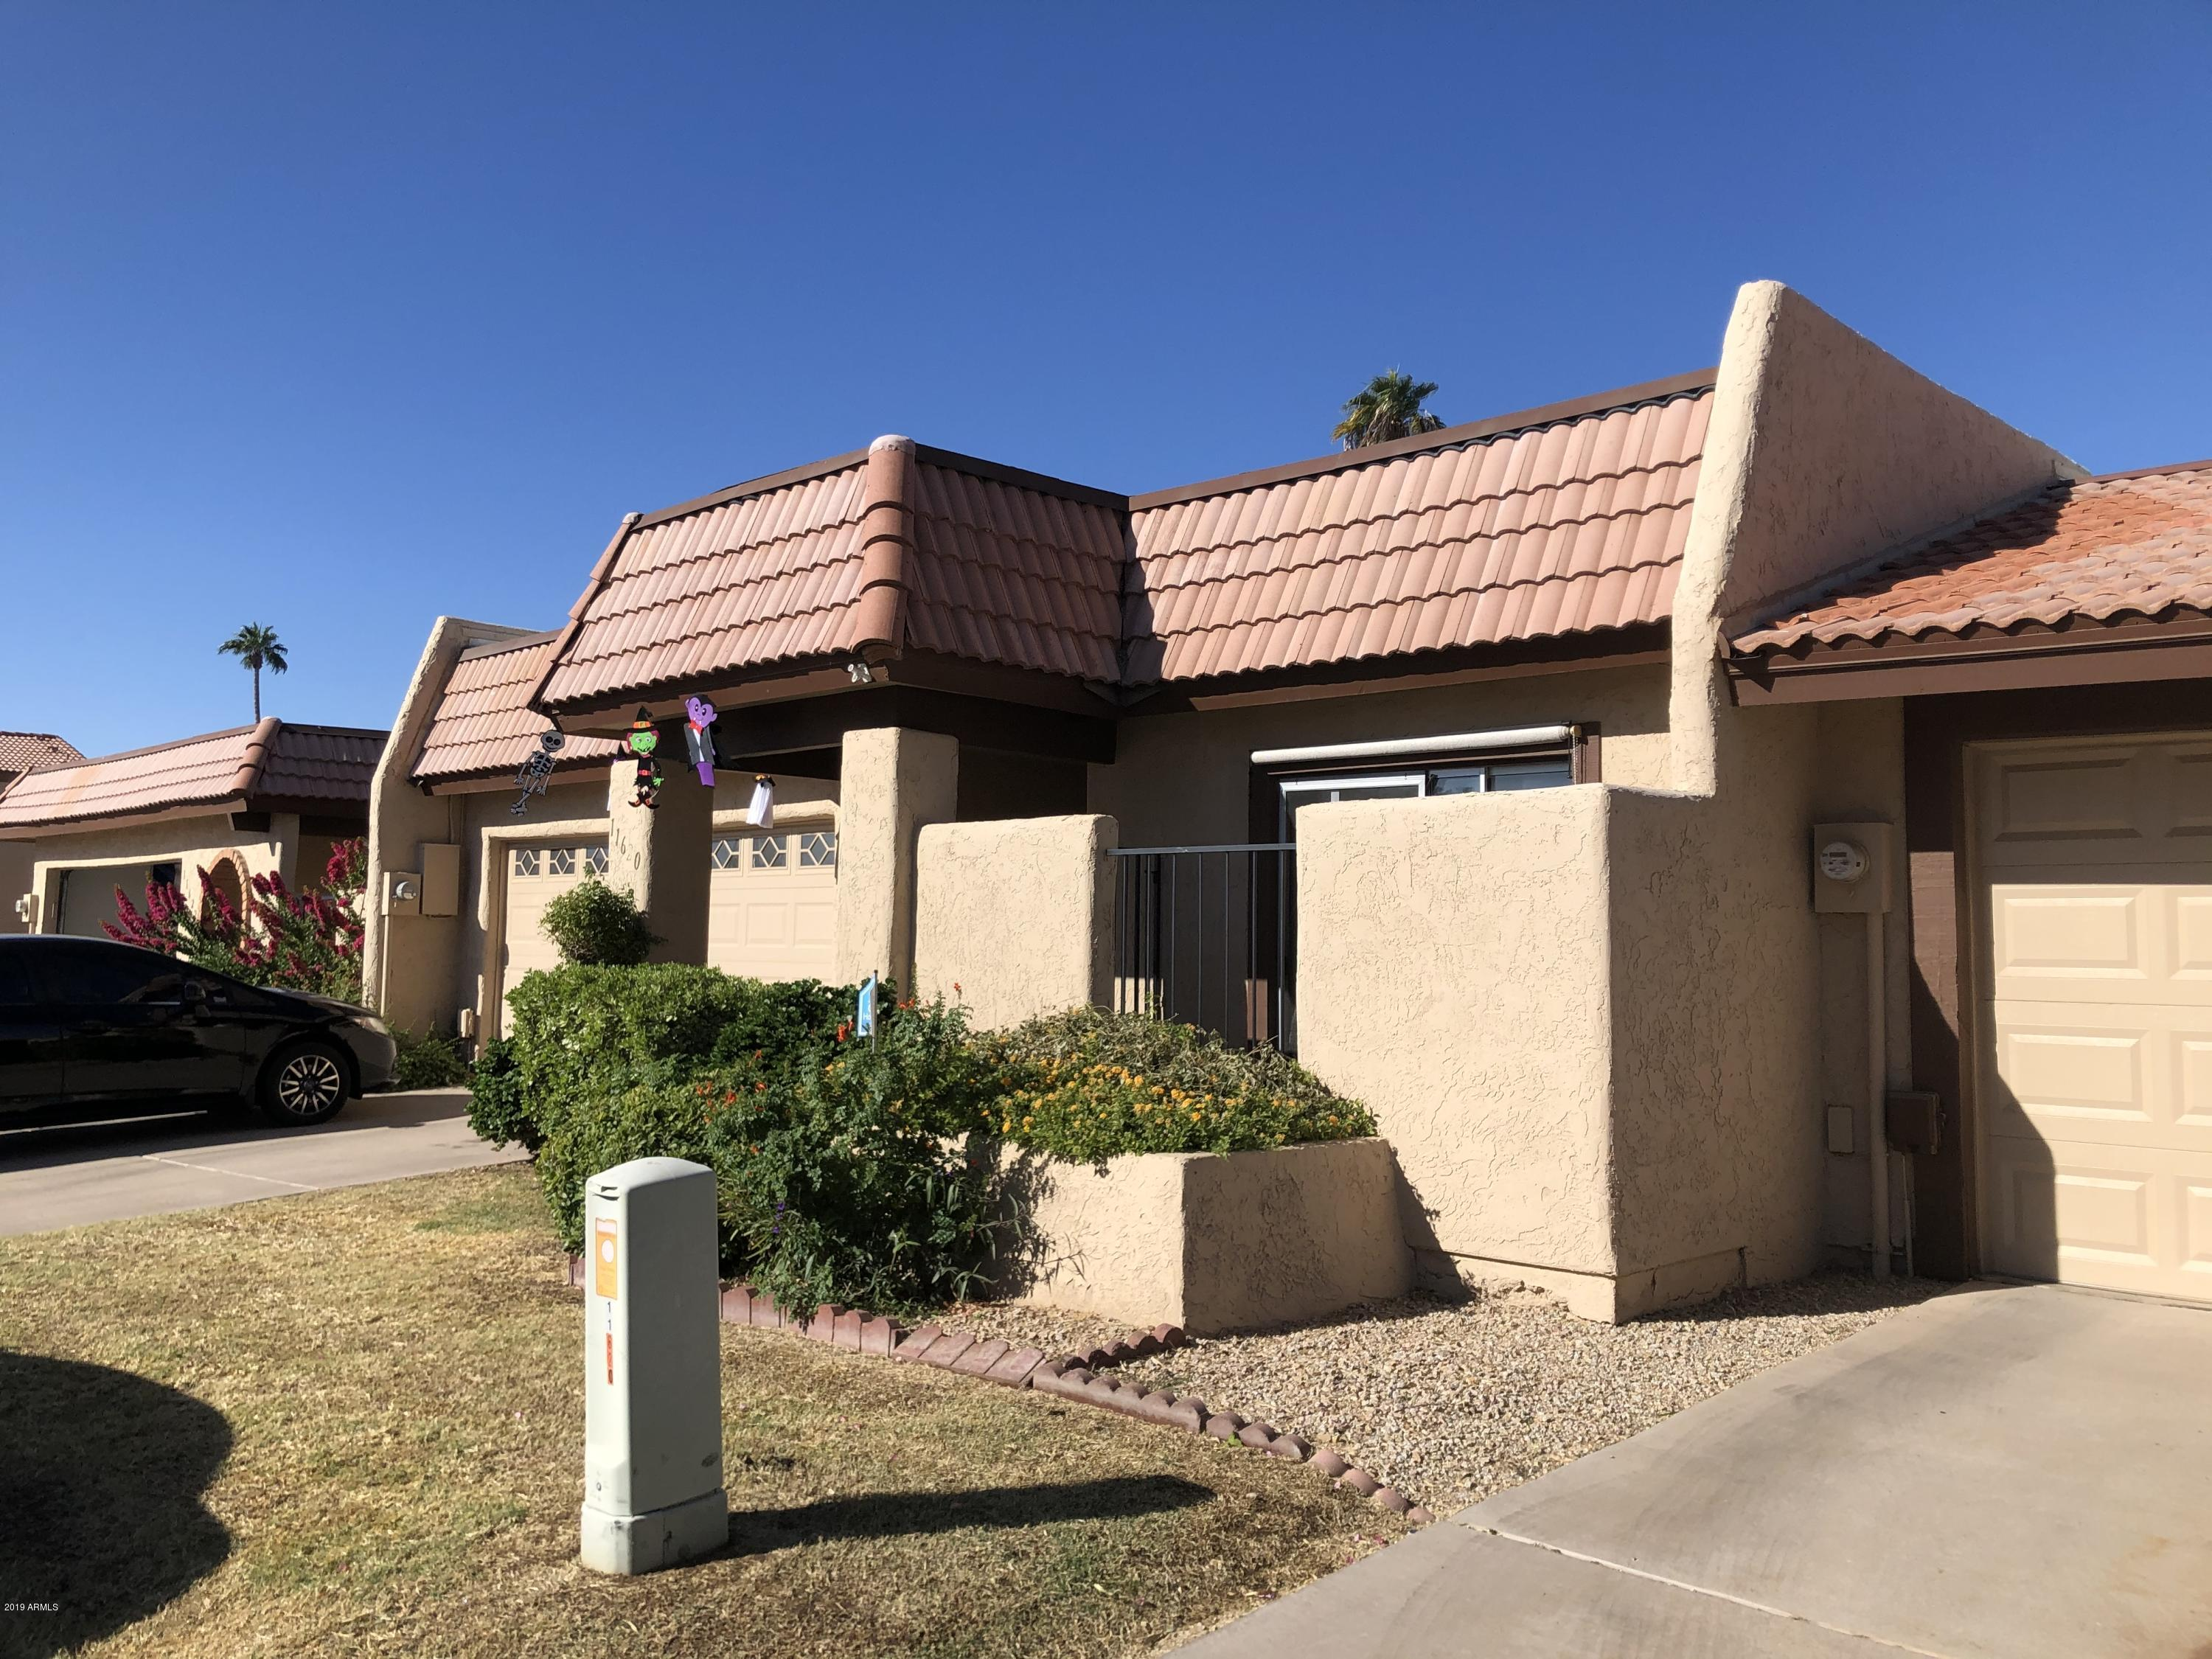 Photo of 11620 S KI Road, Phoenix, AZ 85044